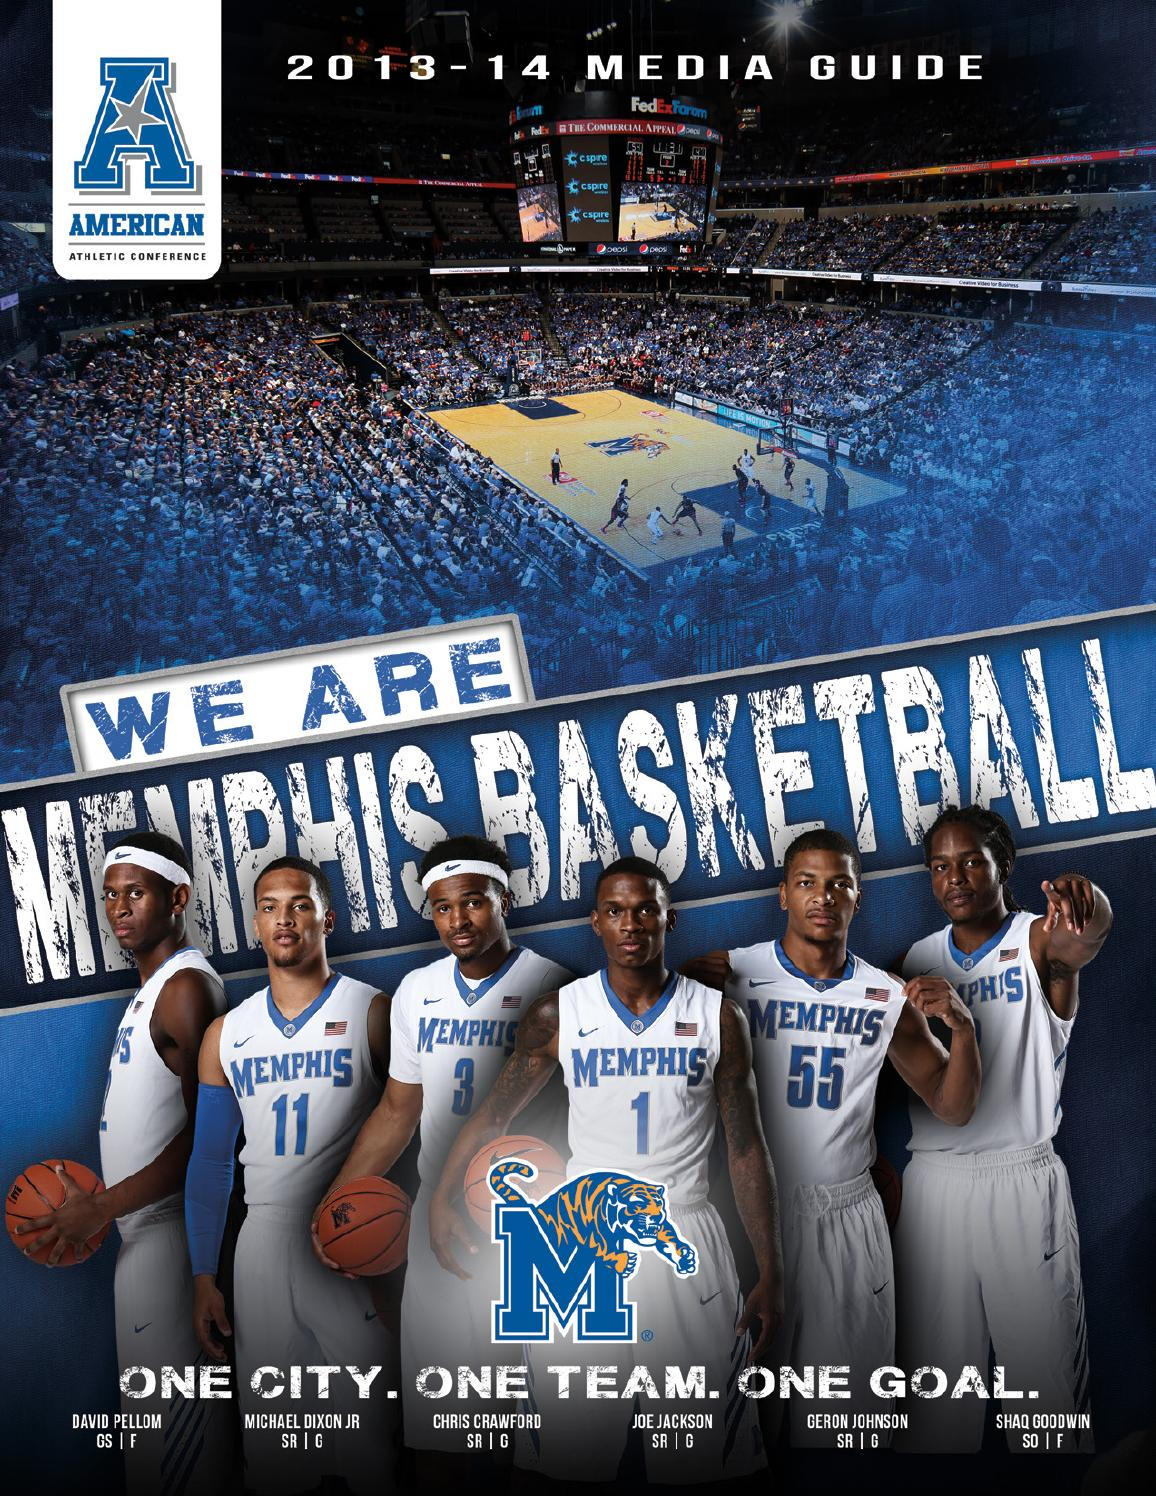 1f11aa6cc 2013-14 Memphis Tigers Men s Basketball Media Guide by University of  Memphis Athletic Media Relations - issuu